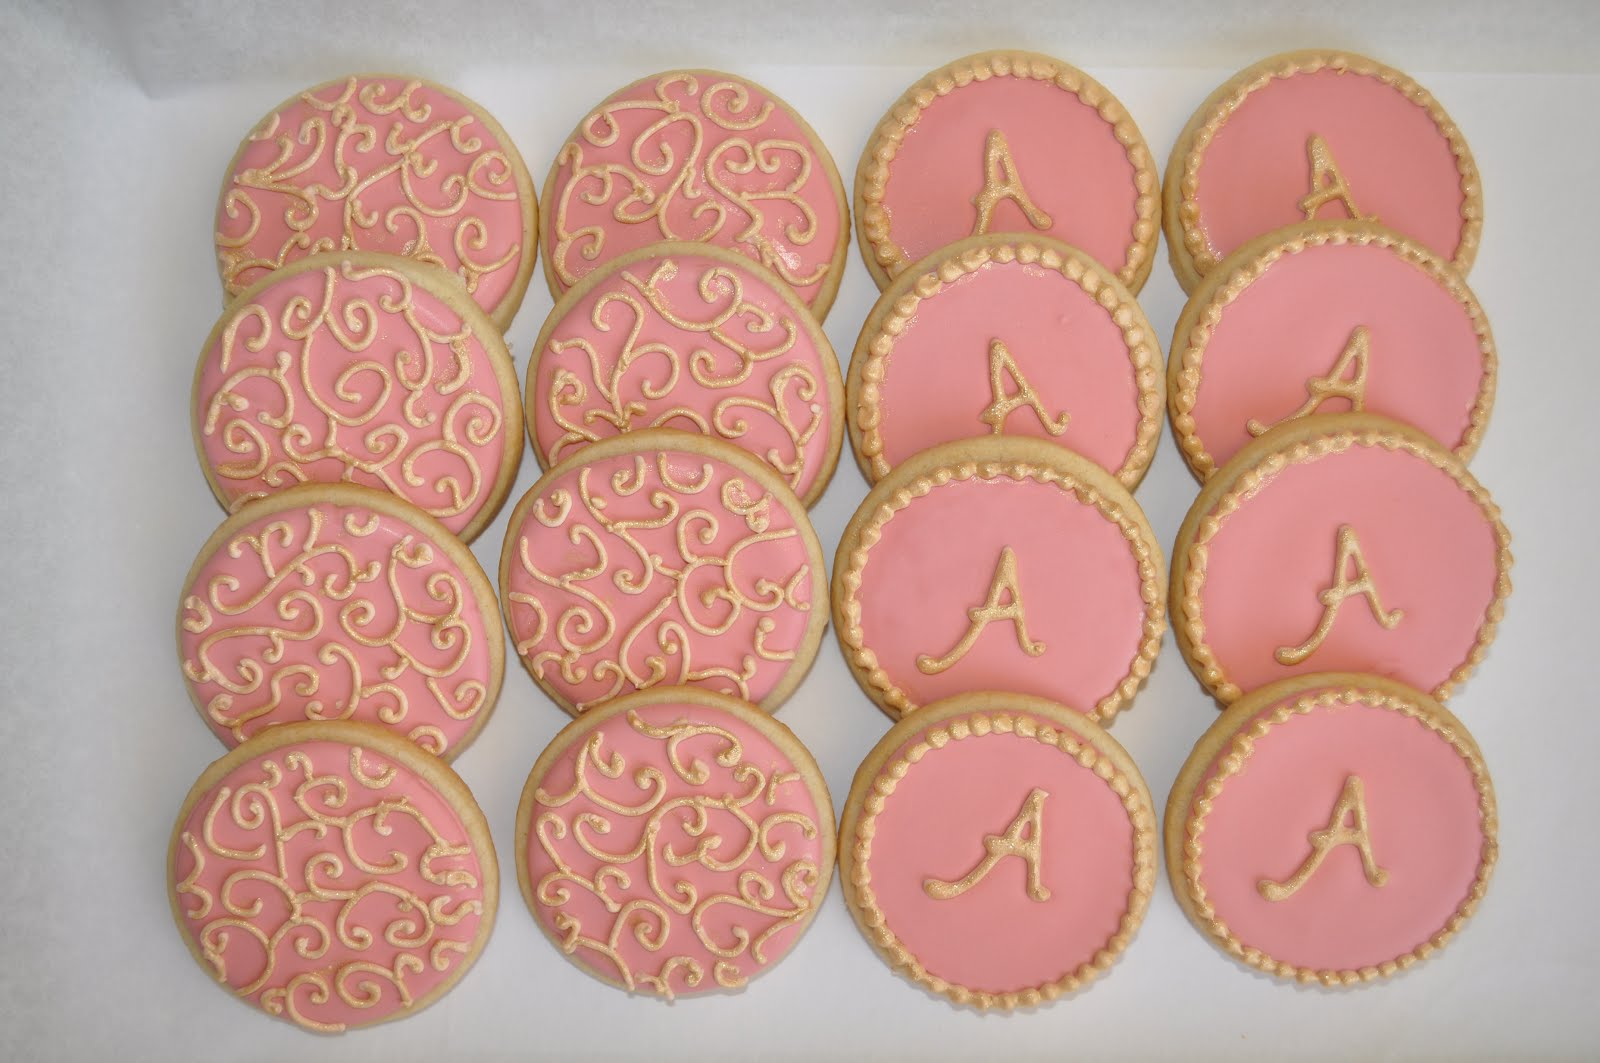 Bridal Shower Favor Cookies – How to make letter royal icing